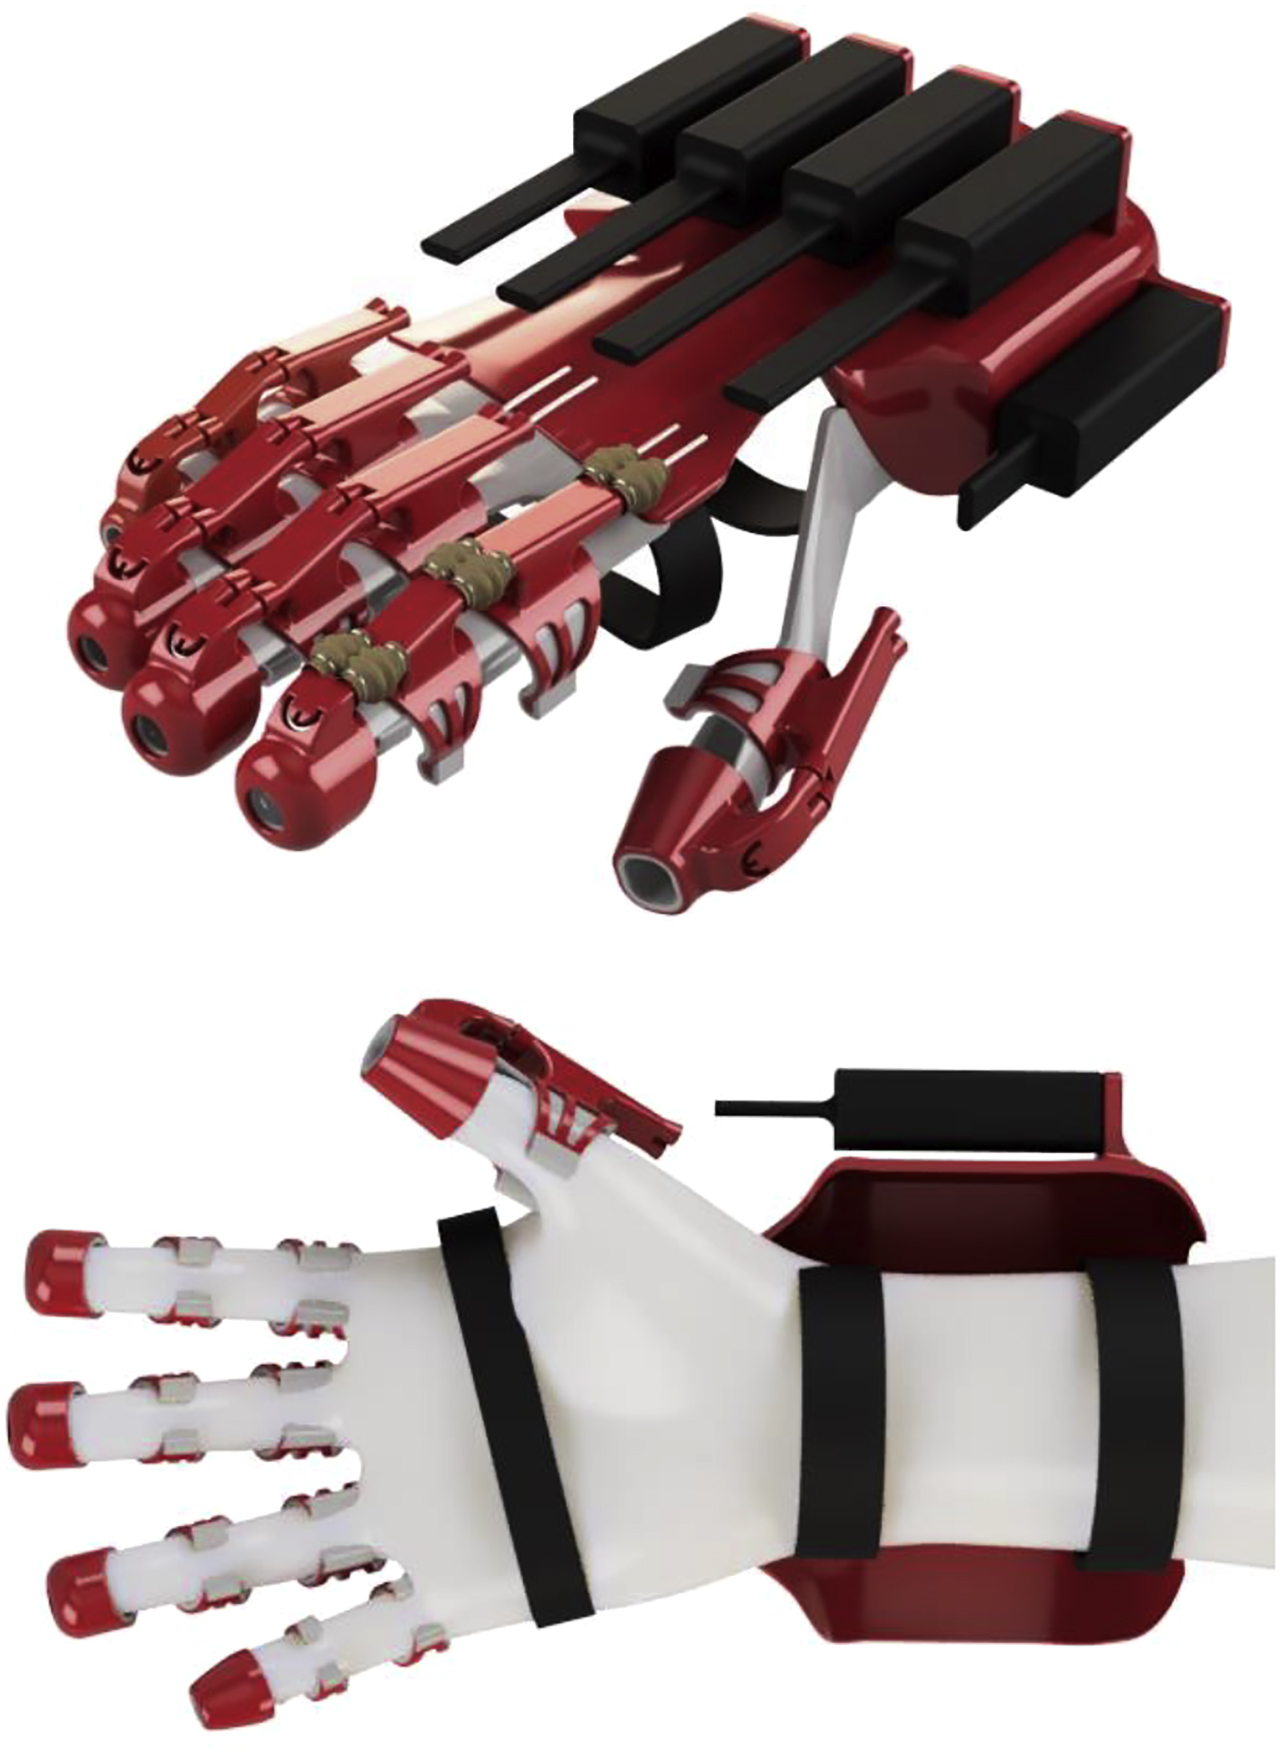 Figure 1: Full overview of the mechanical structure in red with the flexible lining in gray and actuators in black. Top: dorsal view. Bottom: palmar view.